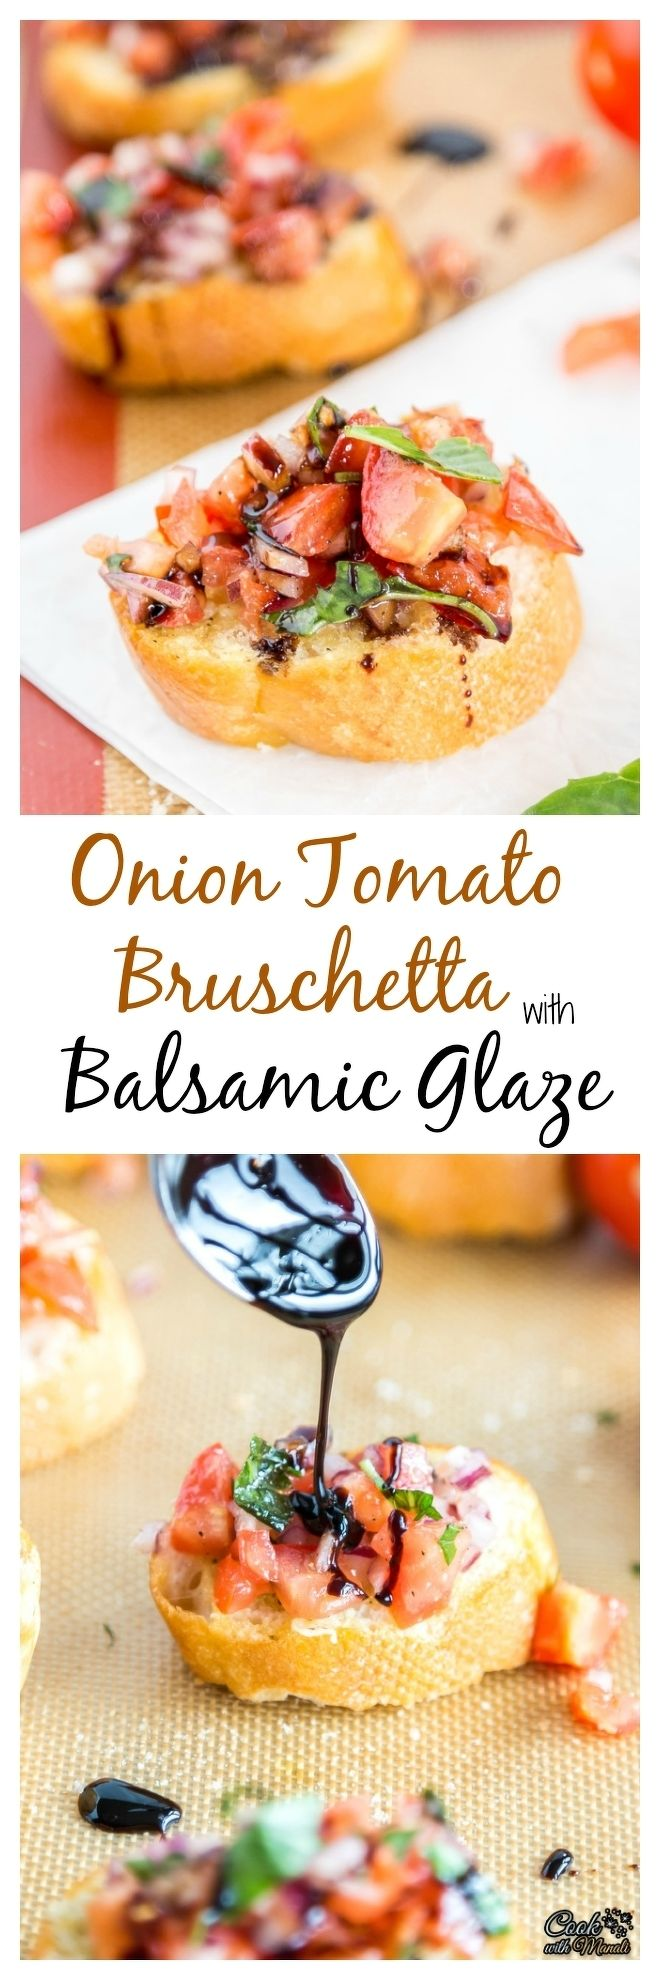 Onion Tomato Bruschetta with Balsamic Glaze-Collage-nocwm